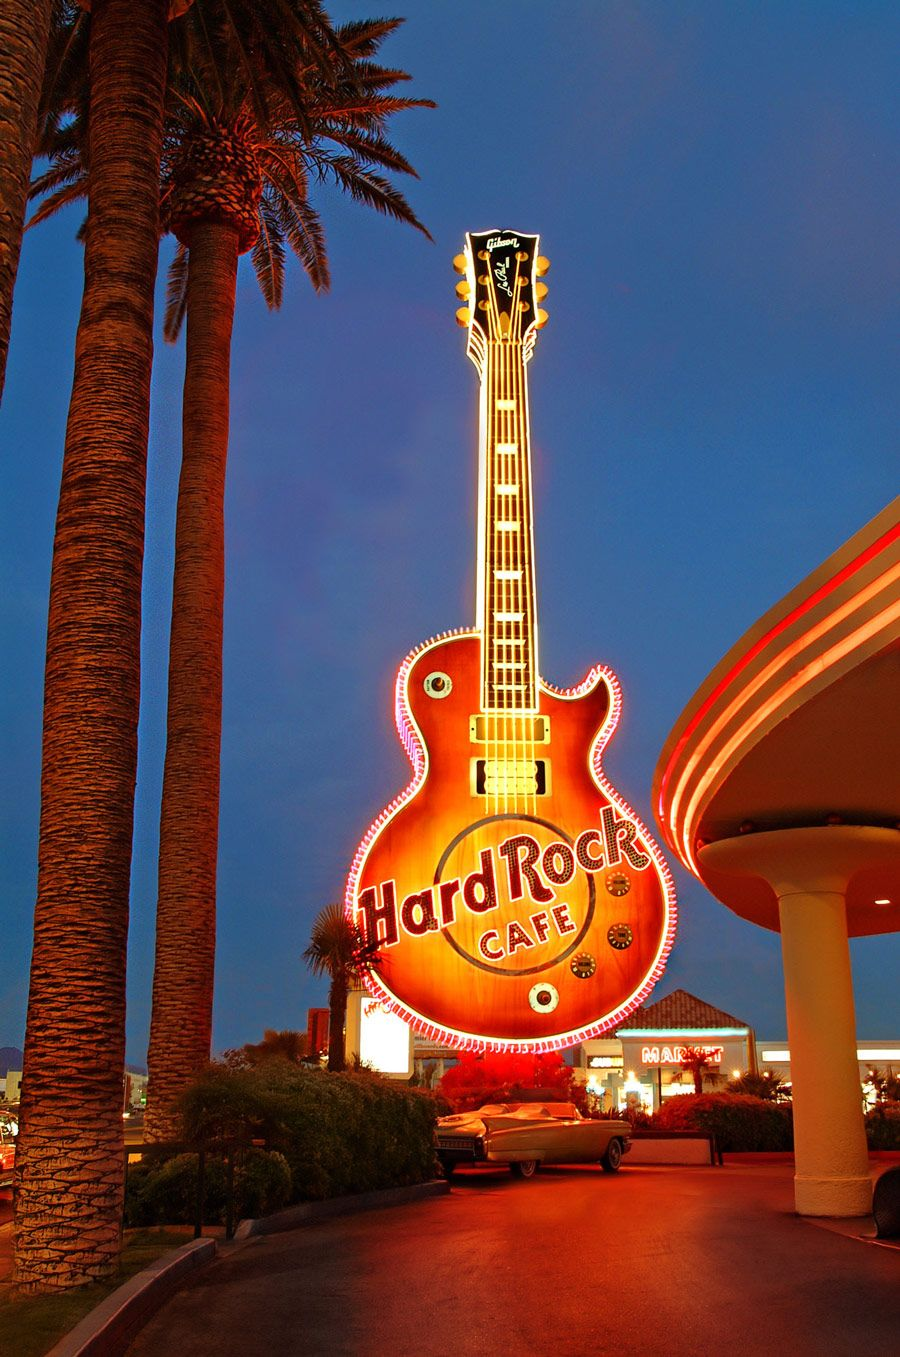 80 feet of neon help us preserve the hard rock caf guitar sign and bring it to the neon museum. Black Bedroom Furniture Sets. Home Design Ideas